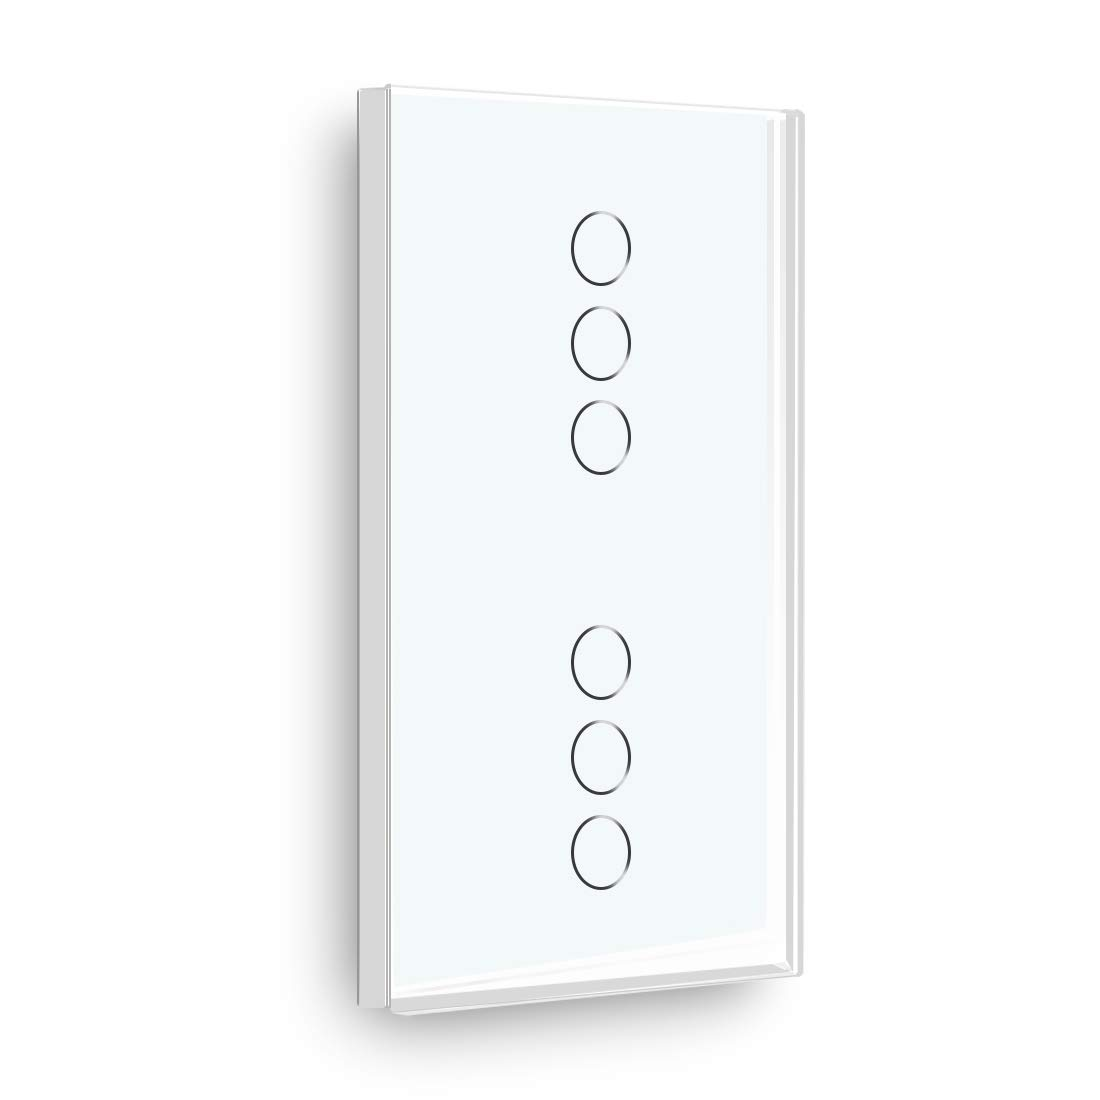 BSEED Interruptor Tactil 2 Gang 1 Way and 2 Gang 2 Way Panel de Vidrio 157 86 Interruptor de La Luz de La pared BLanco